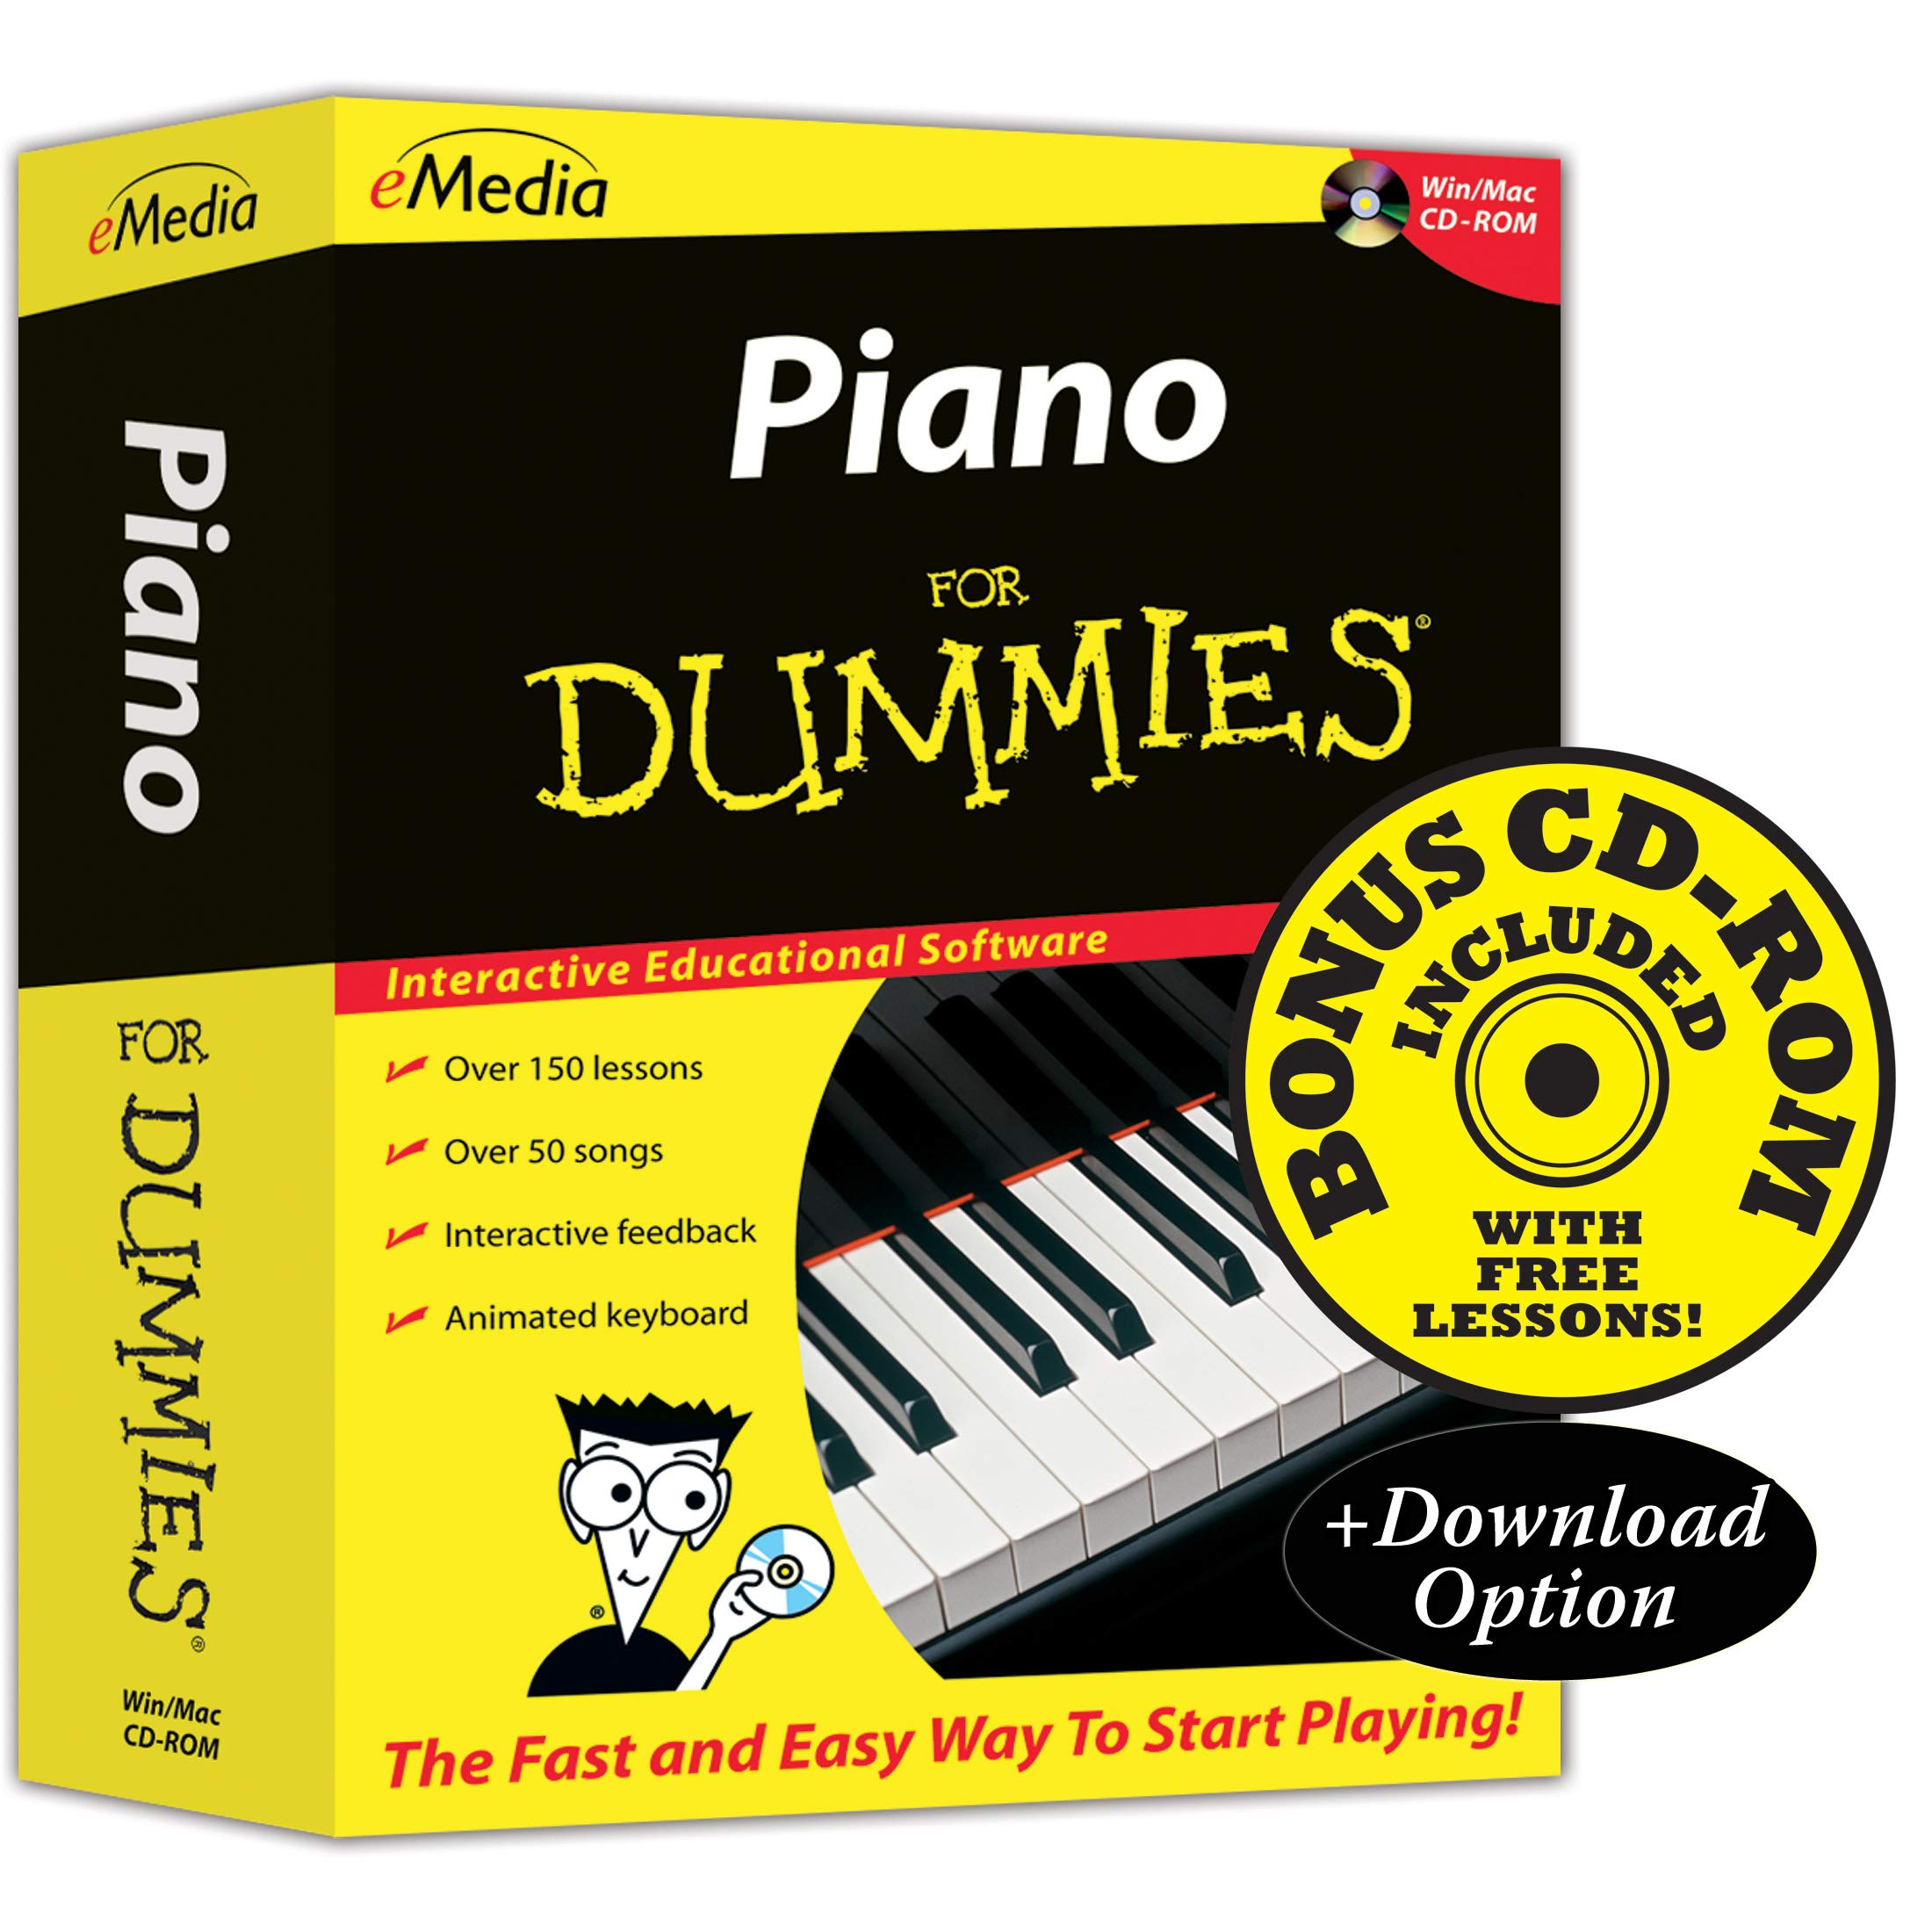 eMedia Piano For Dummies v2 - Amazon Exclusive Edition with 150+ Additional Lessons by eMedia